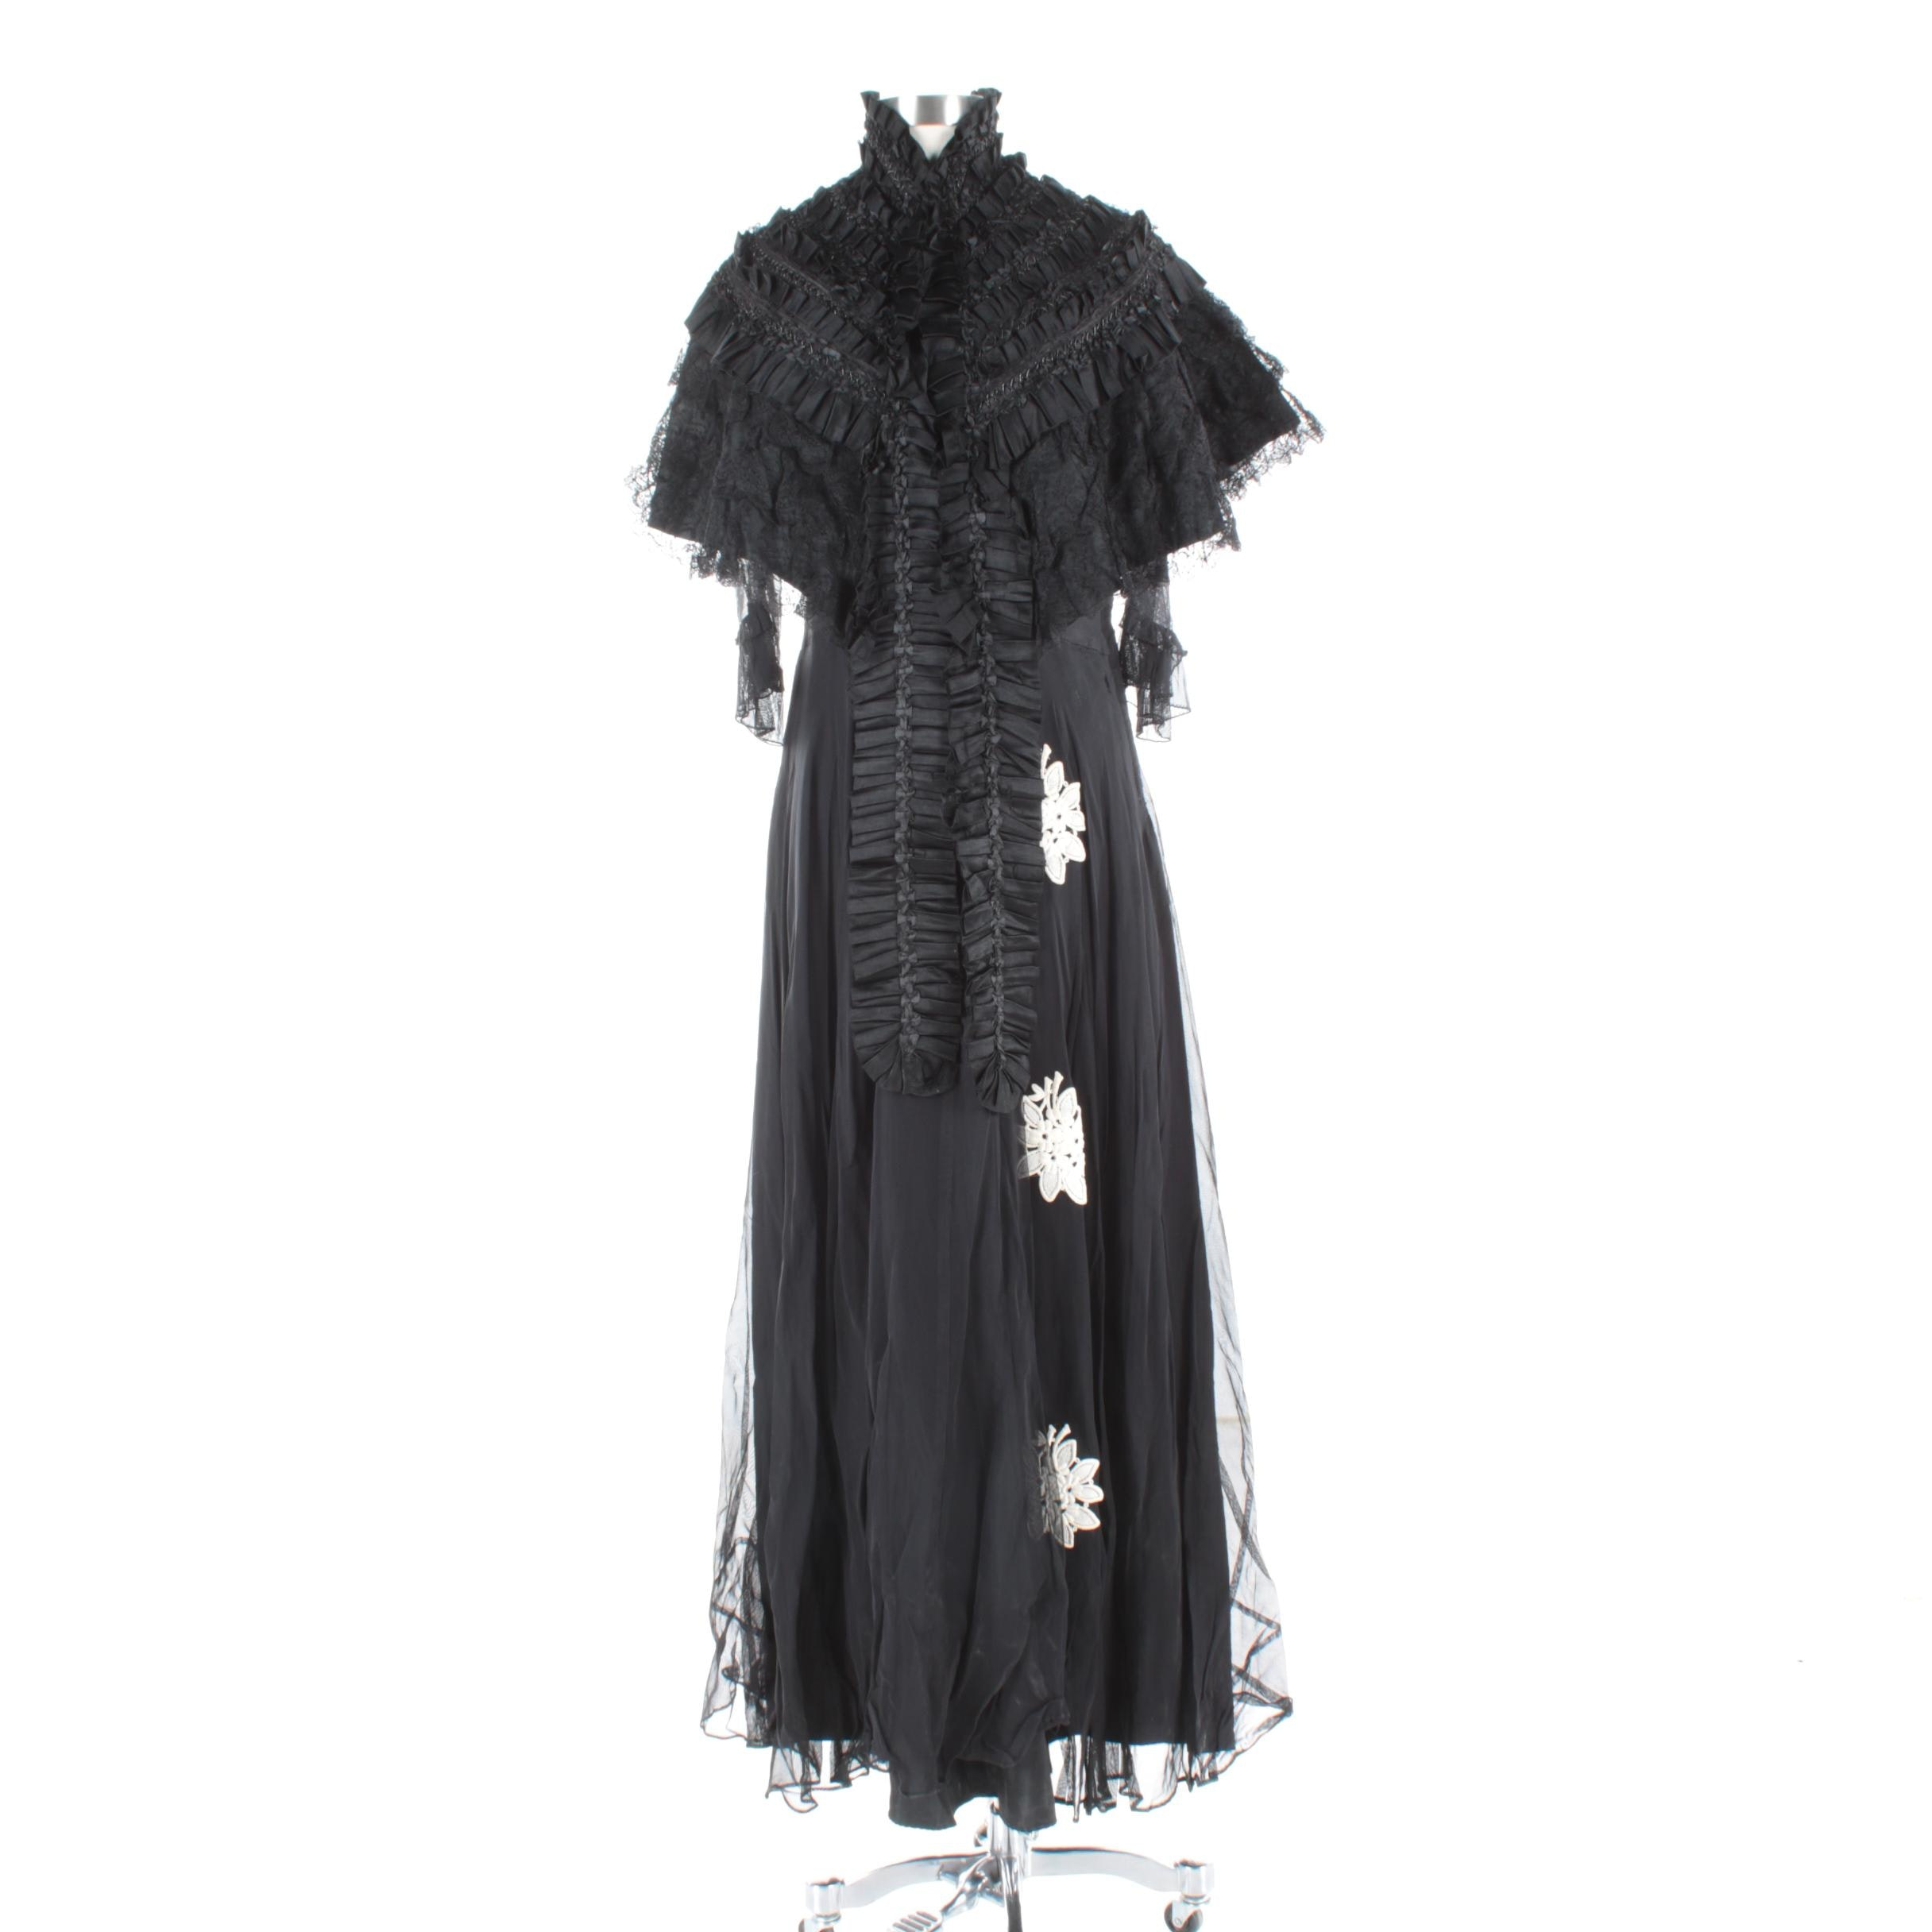 Vintage Black Dress and Victorian Style Black Ruffled Stole